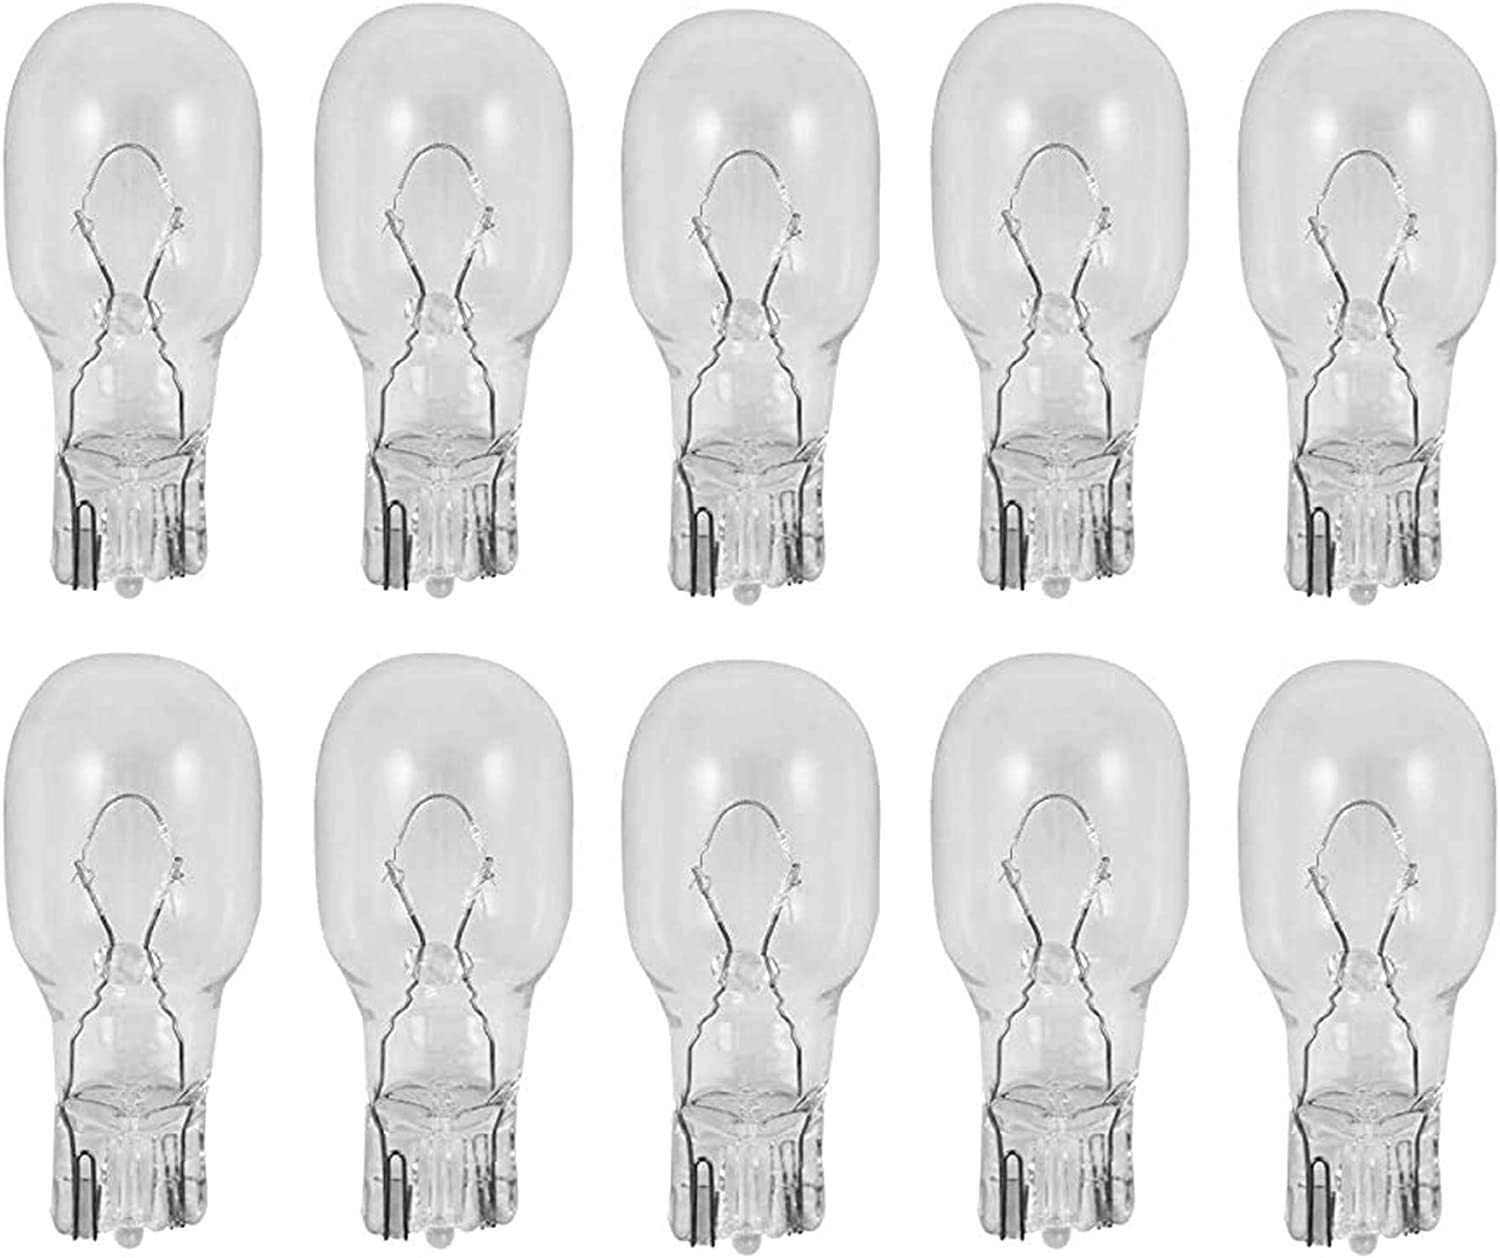 12 Volt 11 Watt Low Voltage T5 T10 Landscape Bulb Compatible with Malibu ML11W4C Replacement (10 Pack)